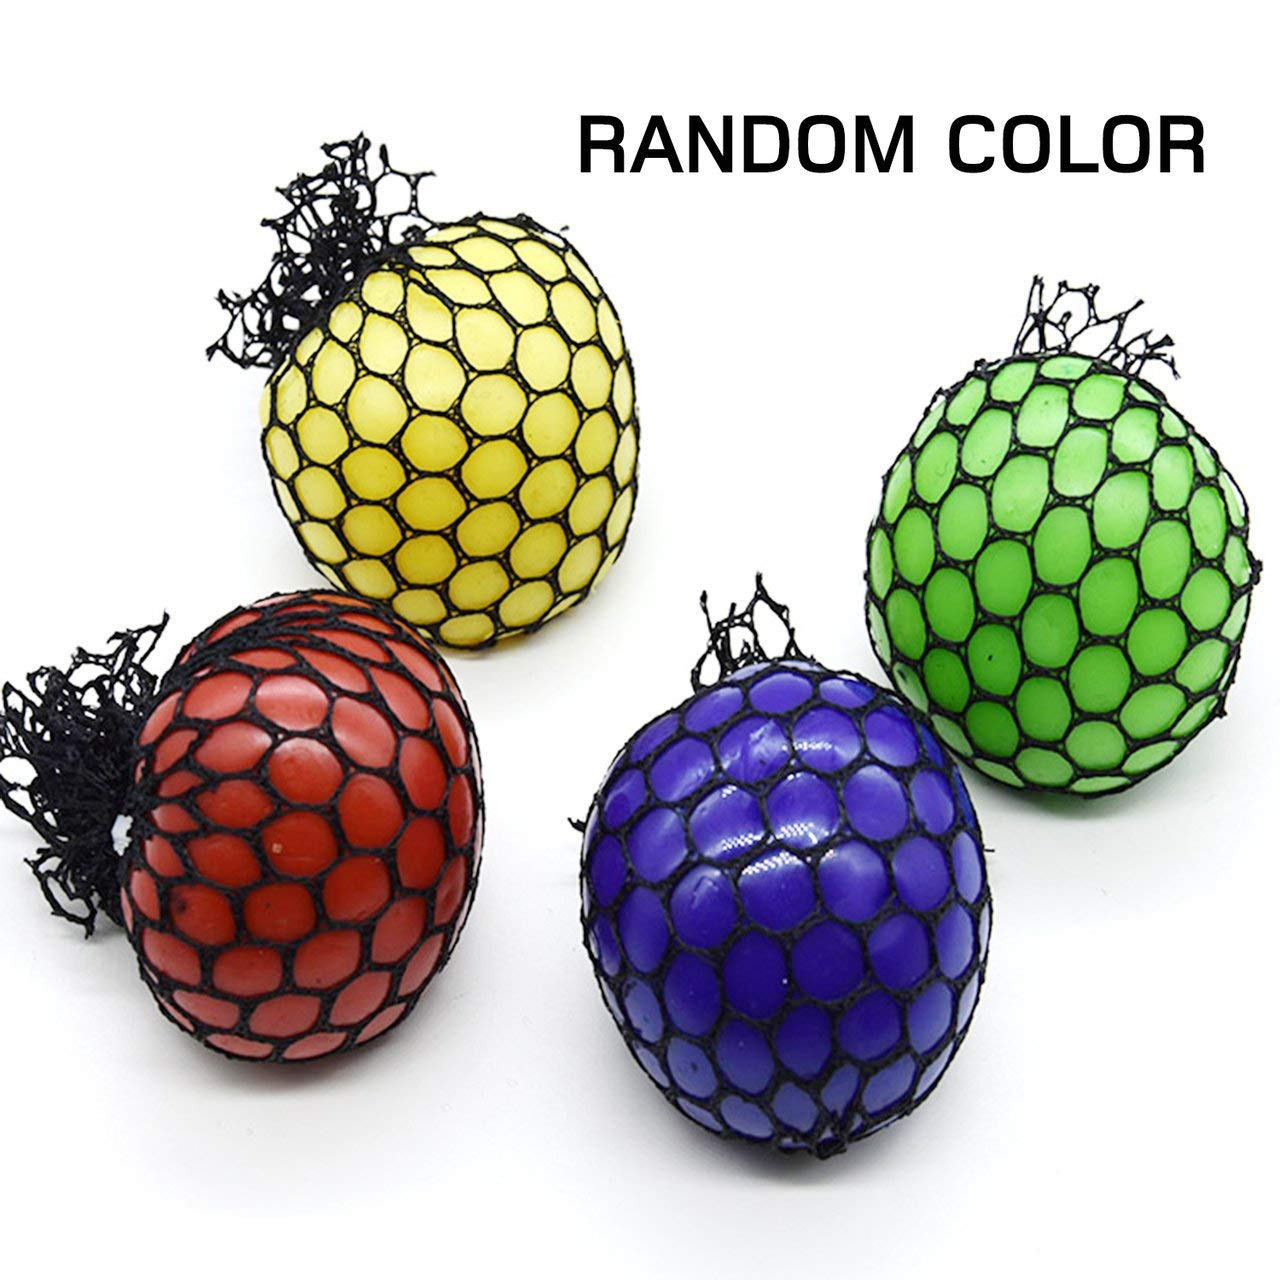 Cute Stress Relief Ball Novetly Squeeze Ball Hand Wrist Exercise Antistress Slime Ball Toy Funny Gadgets Toys Jasnyfall randomly delivered 5cm